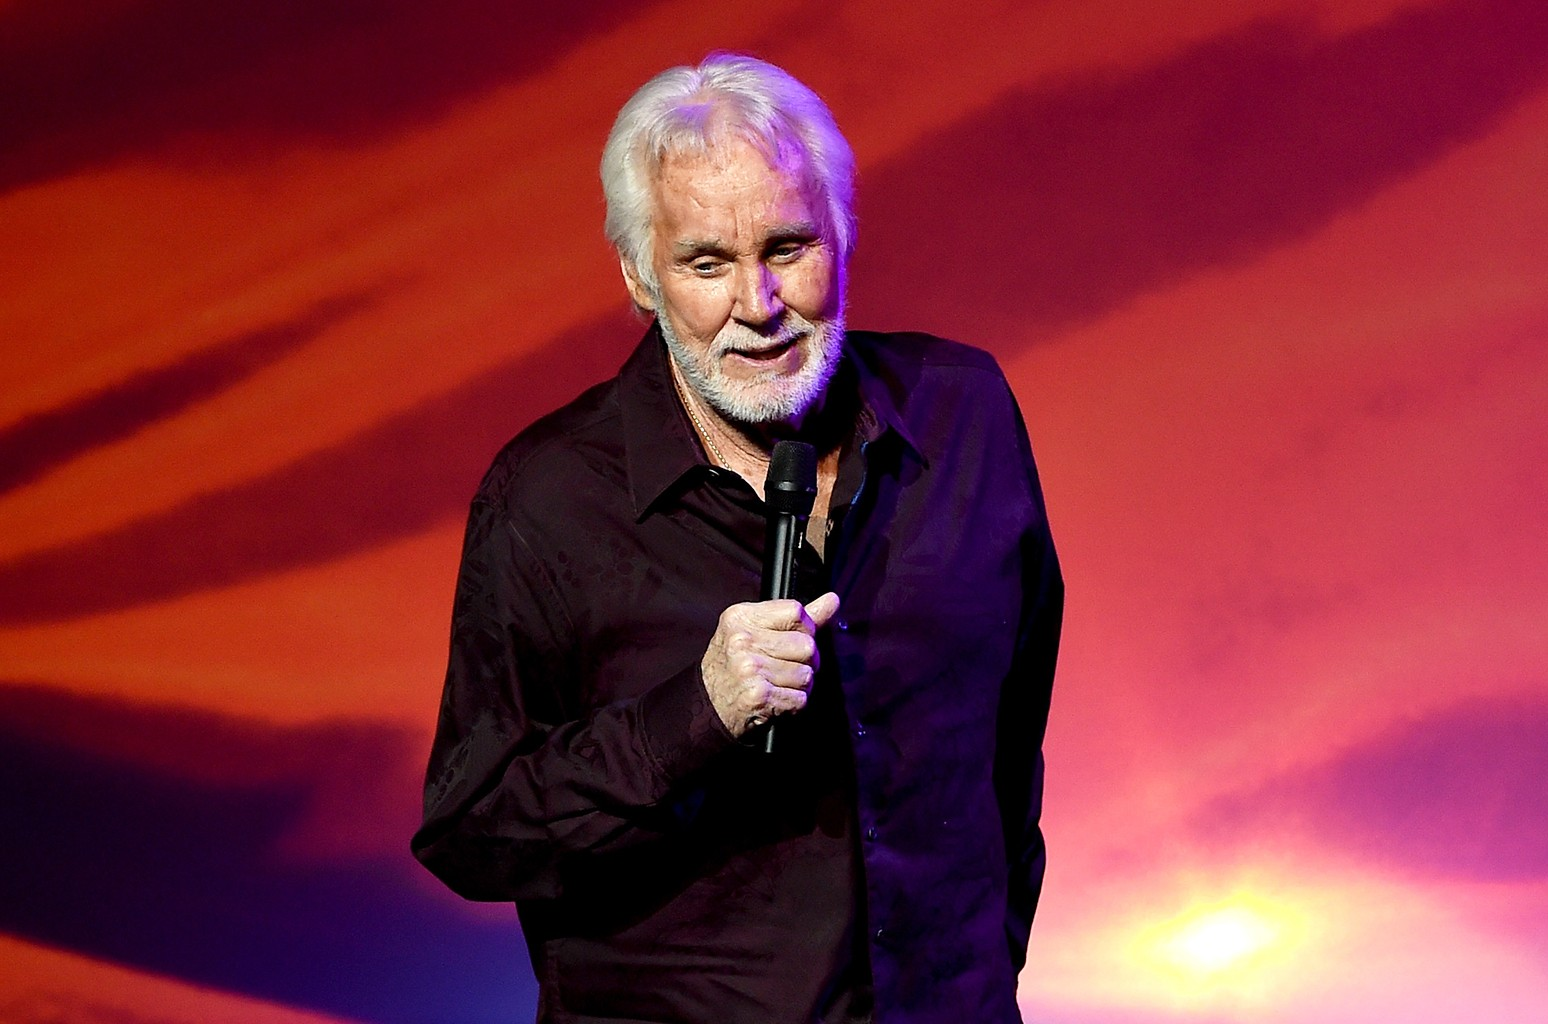 Kenny Rogers performs during his final world tour